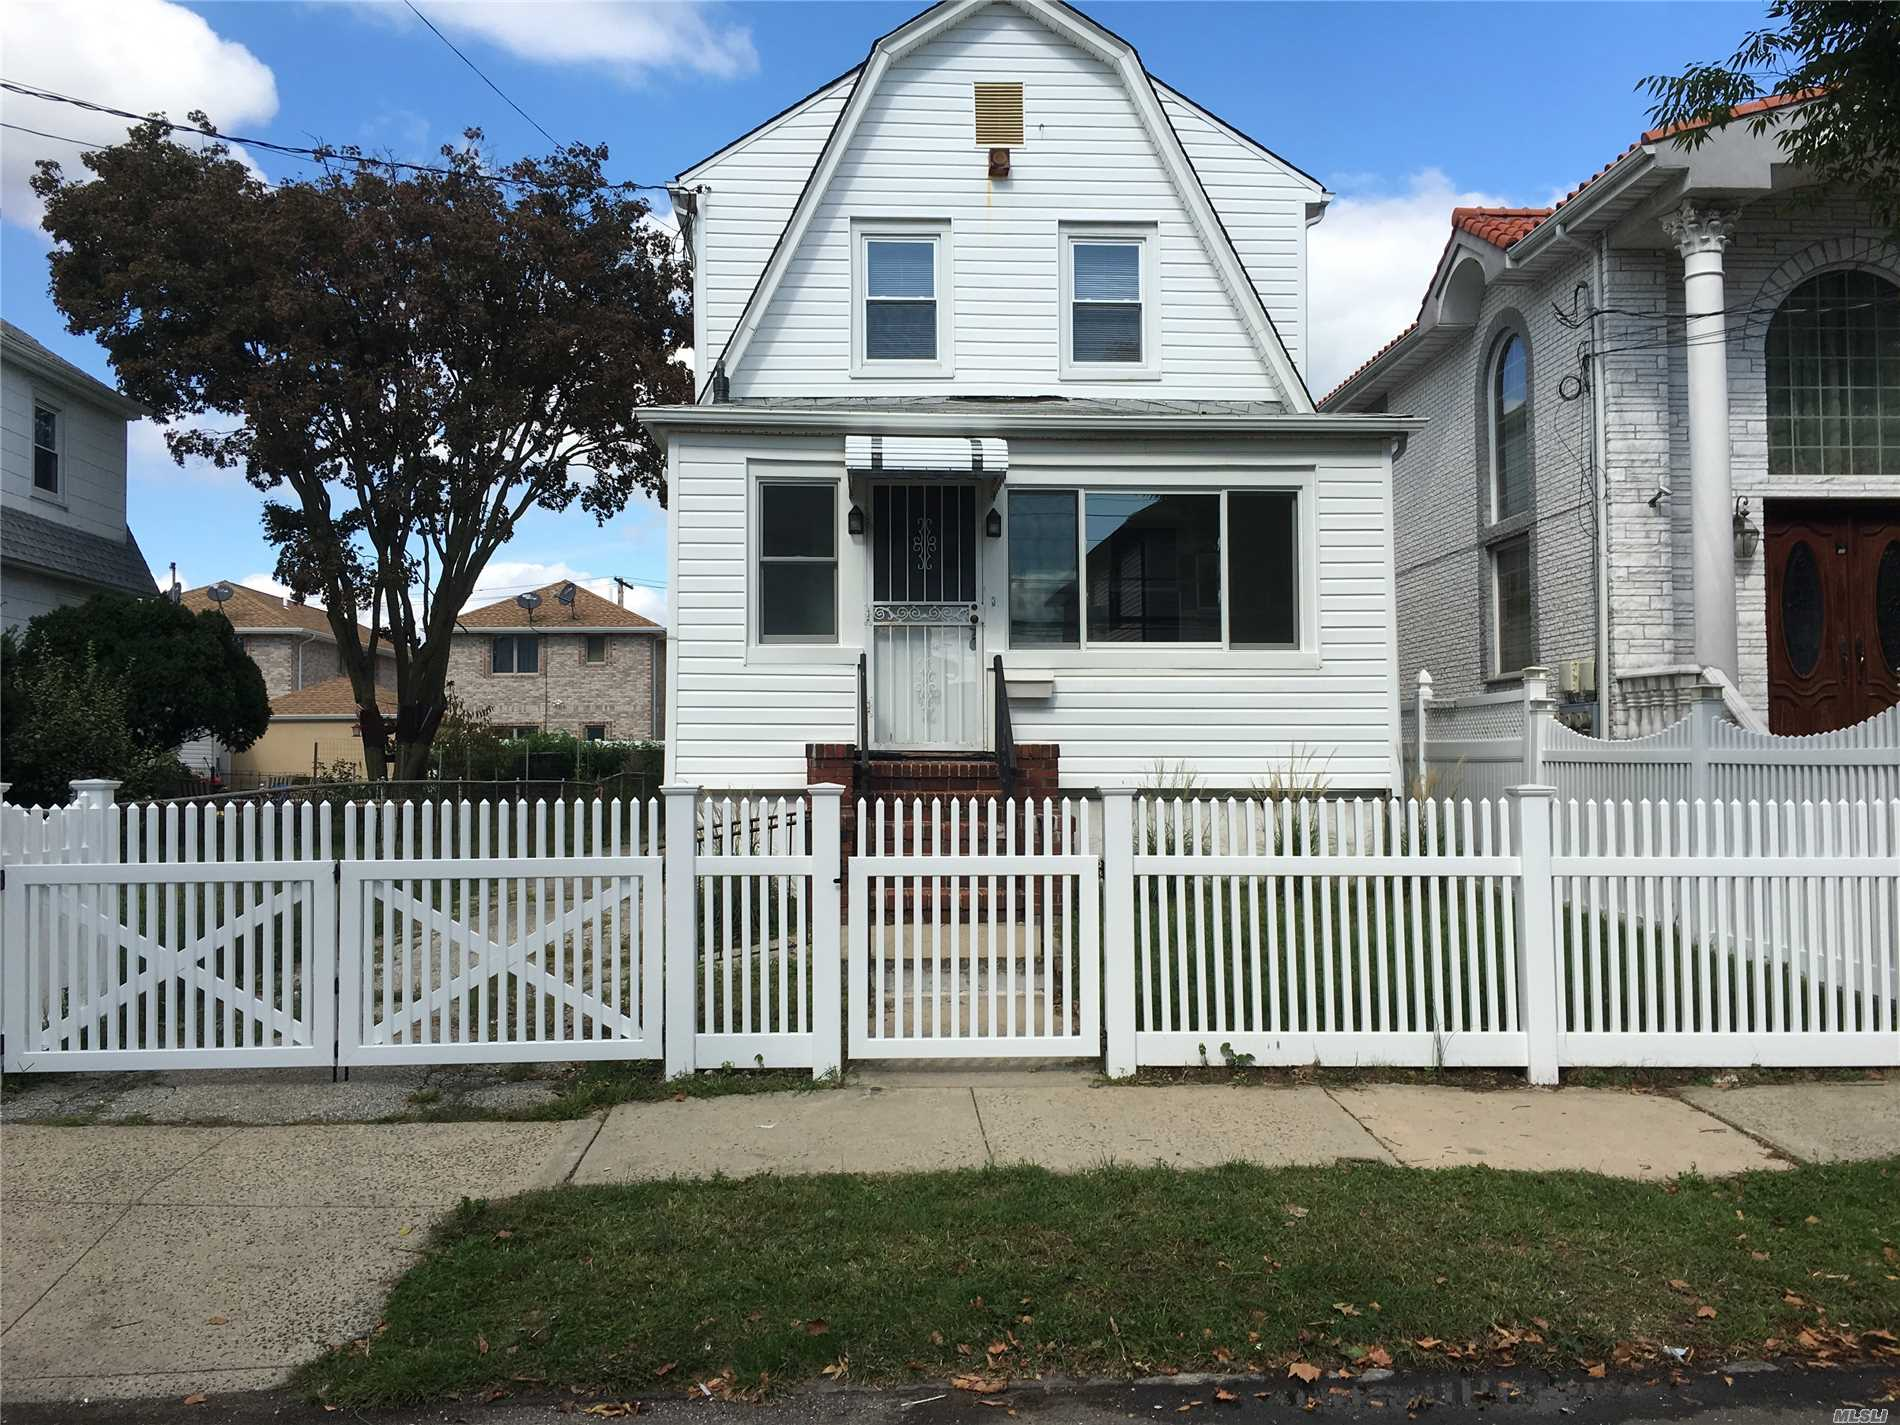 Sunny and Spacious Three Bedroom House For Rent in the Heart of Whitestone with Enclosed Front Porch. Features Living Room, Dining Room, Renovated Eat-In-Kitchen and 1.5 Baths. Backyard and Driveway Included. Hardwood Flooring Throughout & New Windows. Close To Shopping & Transportation.